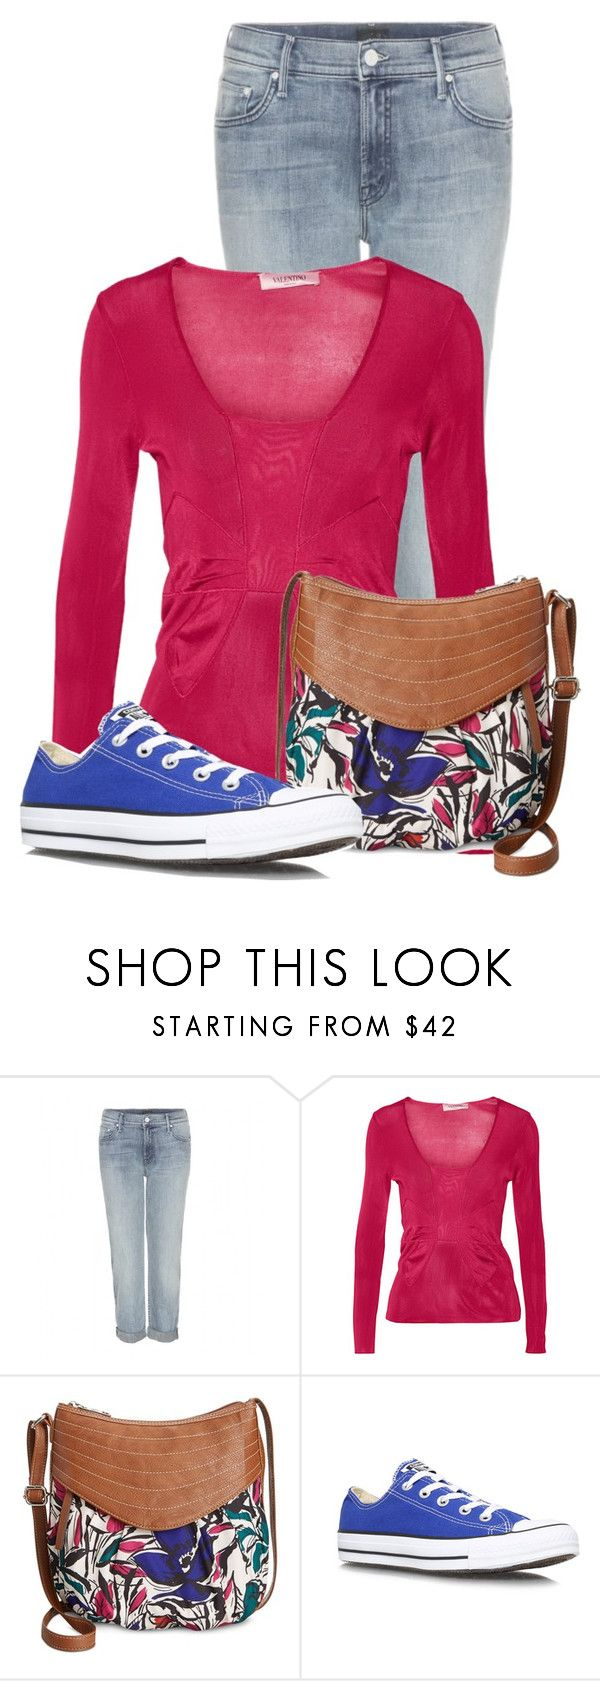 """""""Untitled #13531"""" by nanette-253 ❤ liked on Polyvore featuring Mother, Valentino, Style & Co. and Converse"""